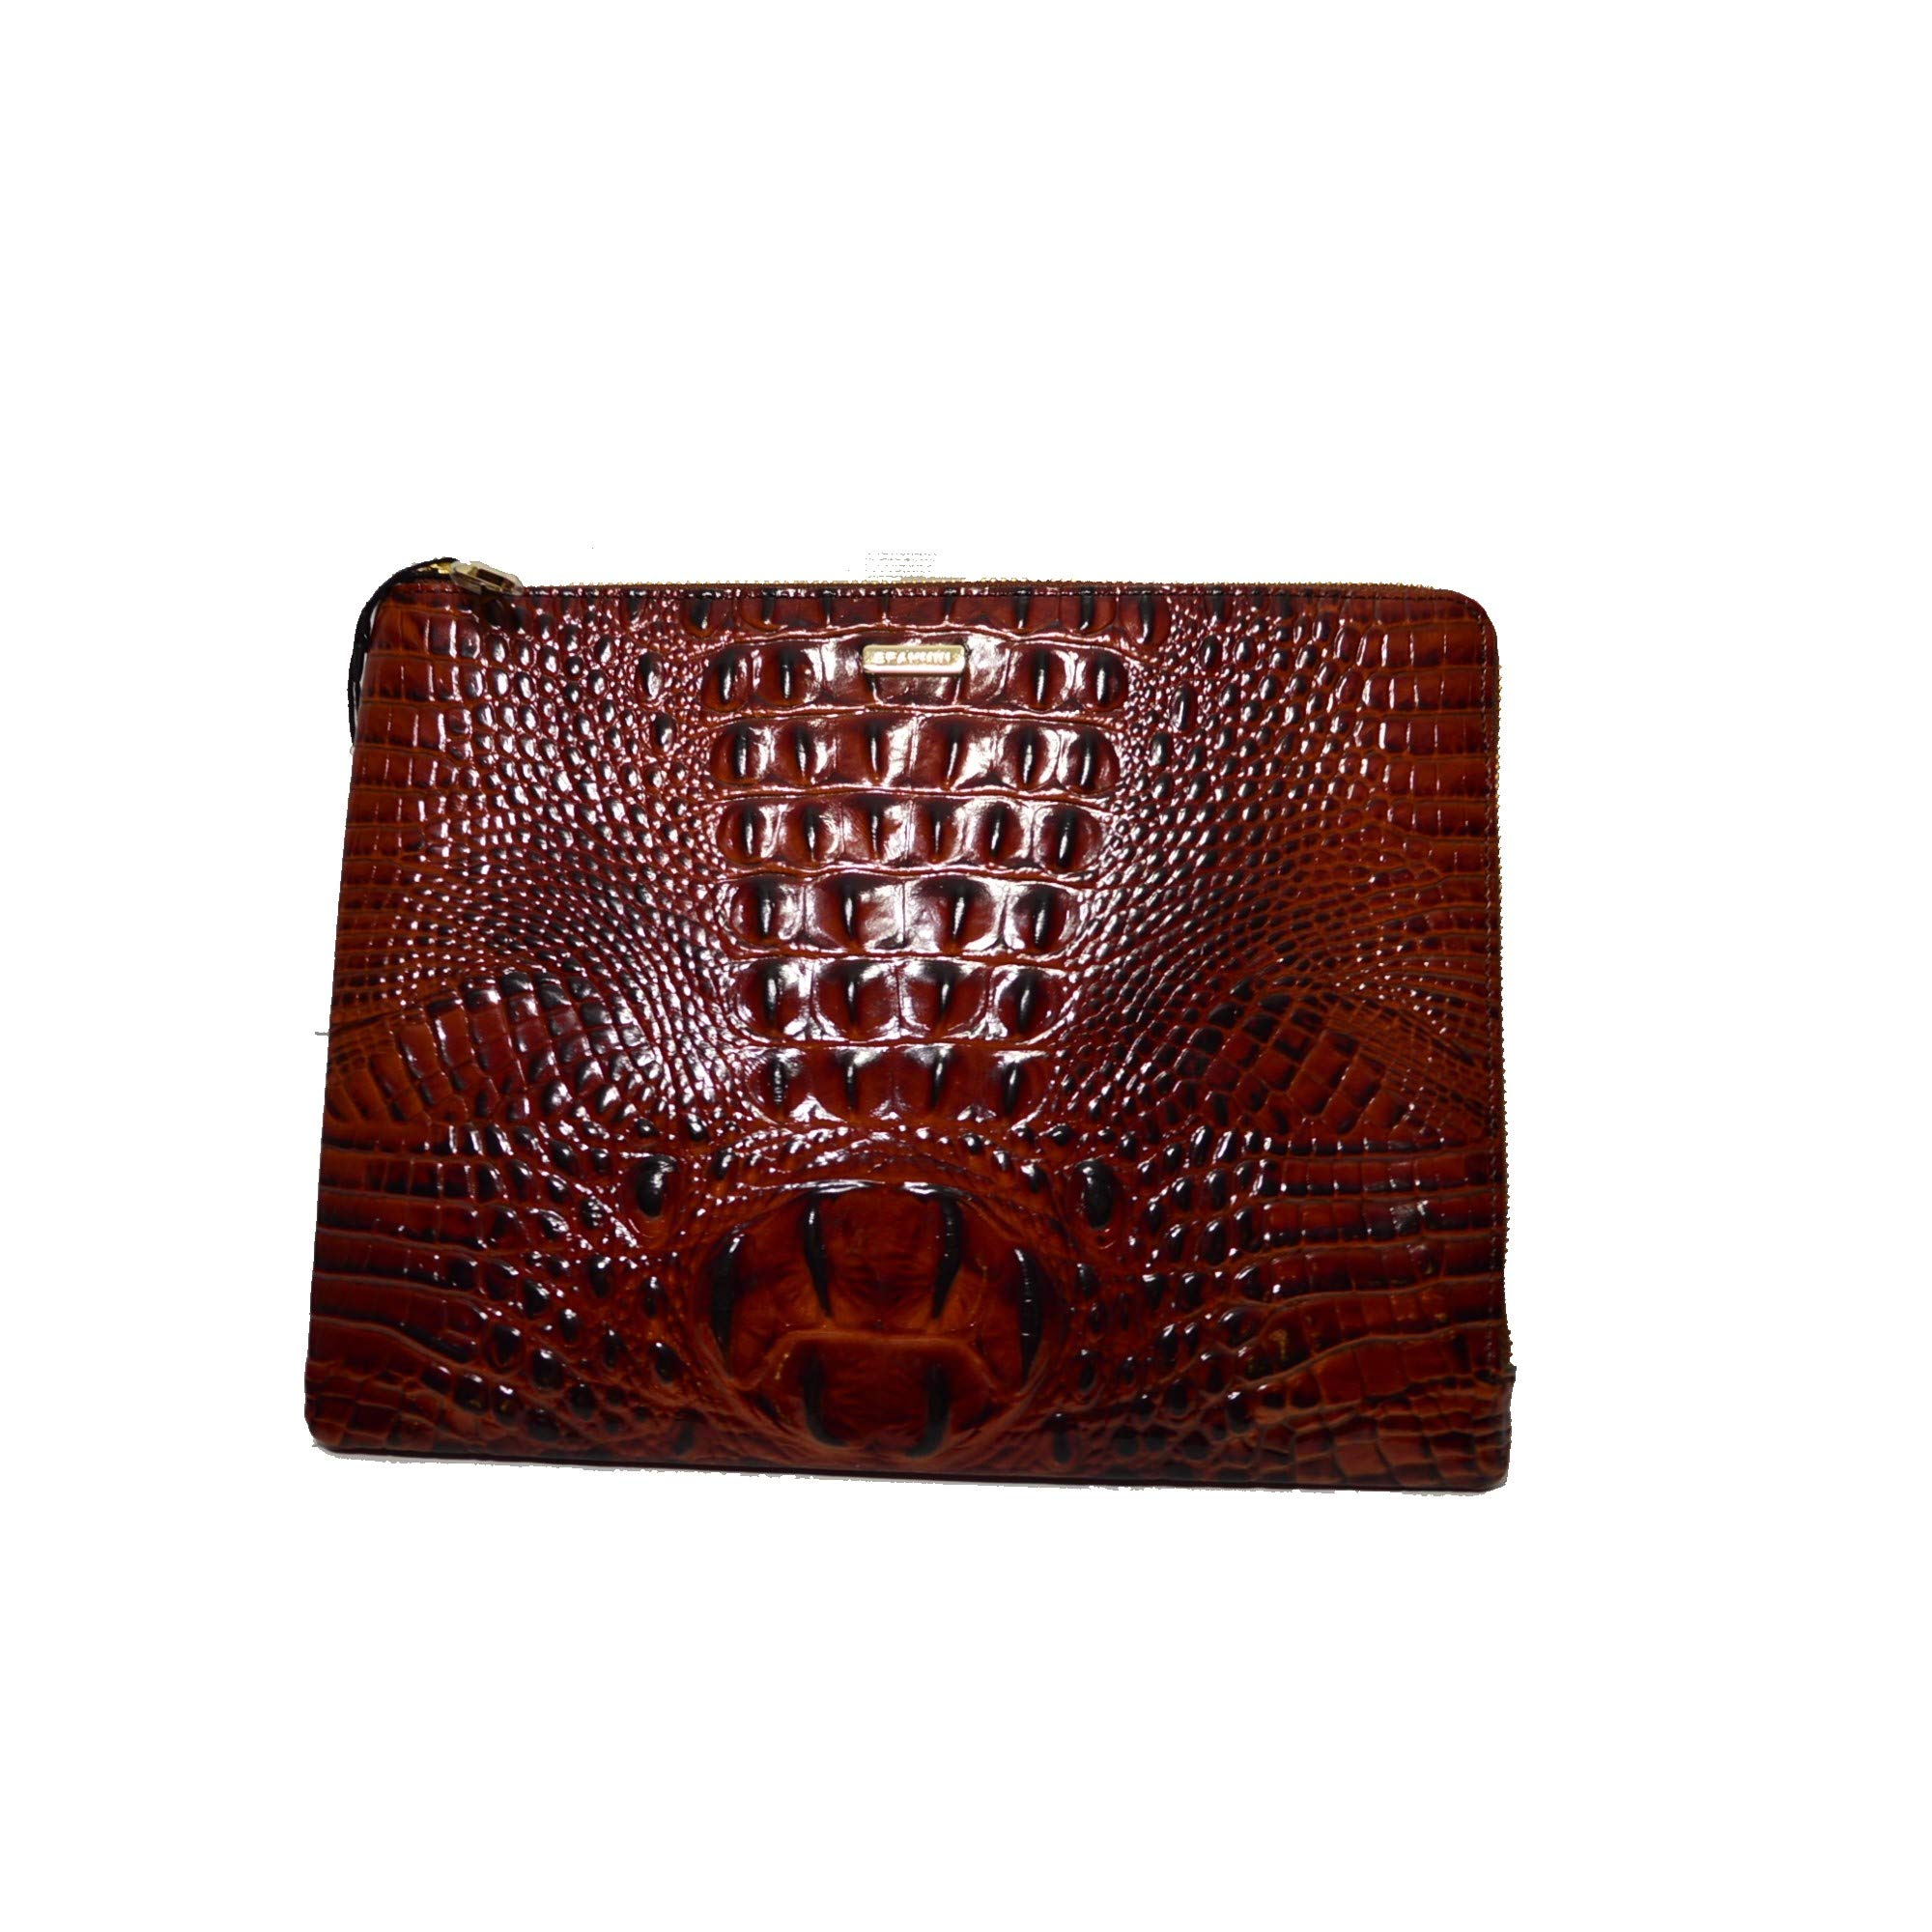 Brahmin Rory Tech Tablet Cover Pecan Melbourne by Brahmin